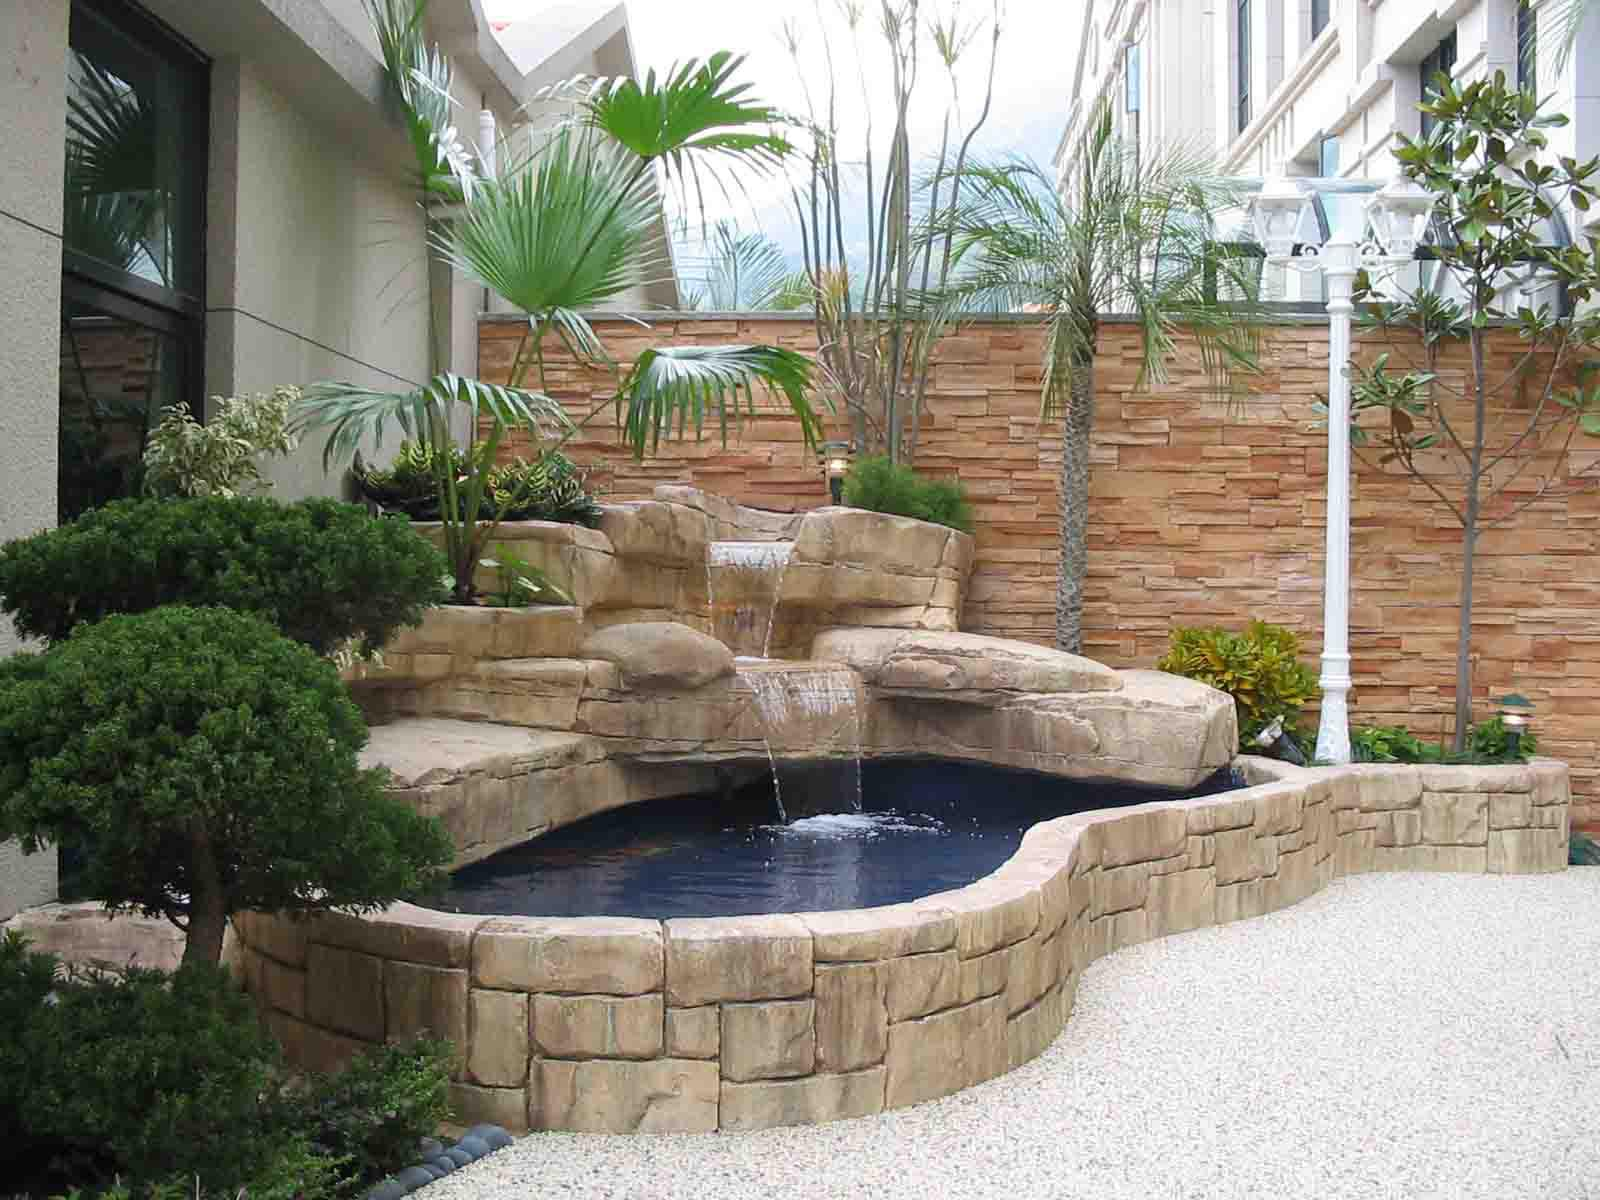 Fish pond garden design backyard design ideas for Fish pond design